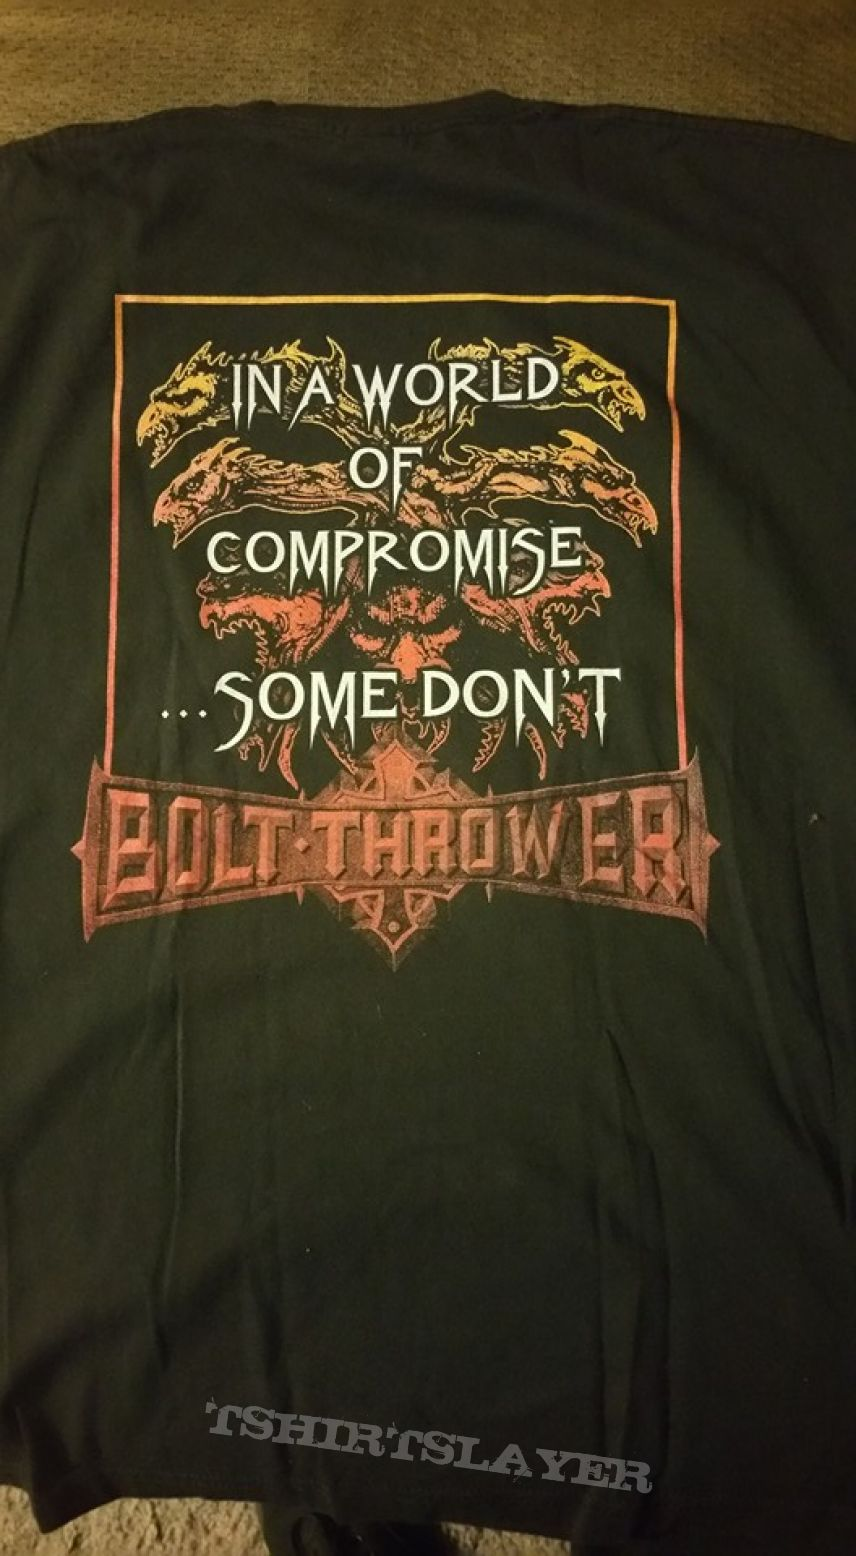 Bolt Thrower carved in stone sleeveless shirt